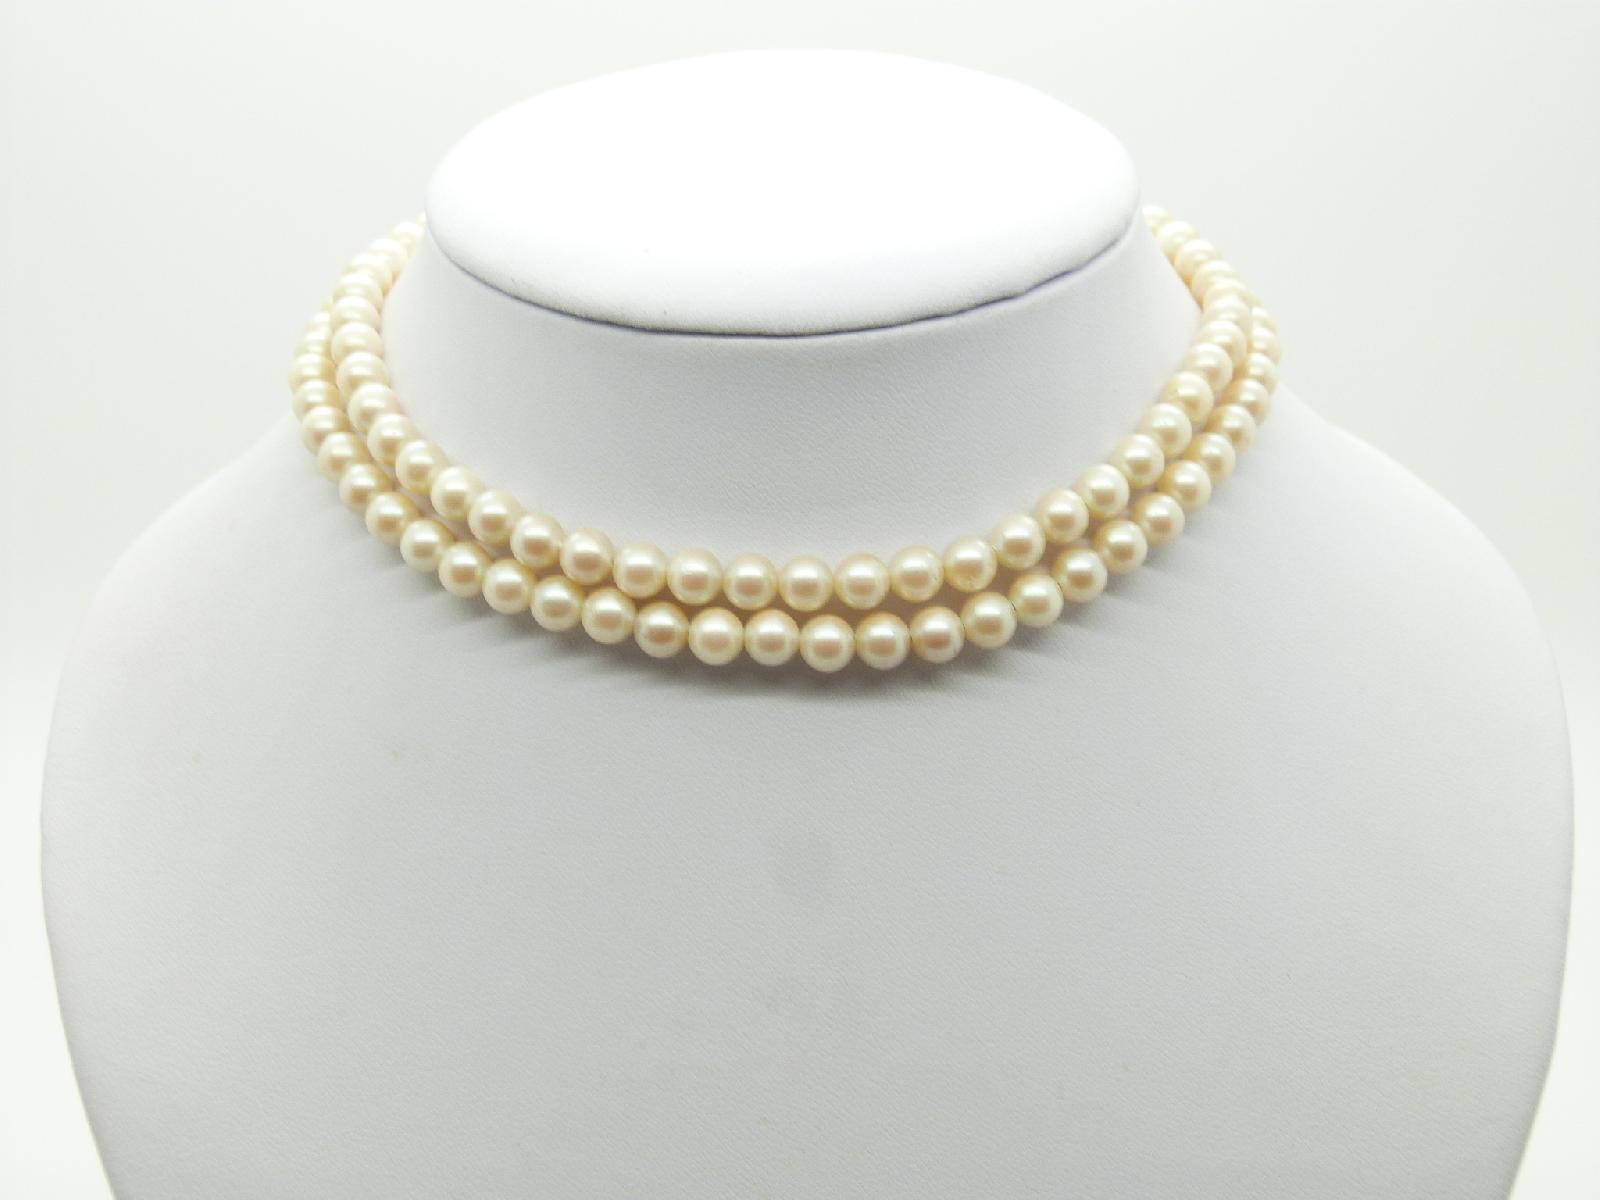 £16.00 - Vintage 50s Long Quality Glass Faux Pearl Bead Necklace 835 Silver Clasp 70cms Long